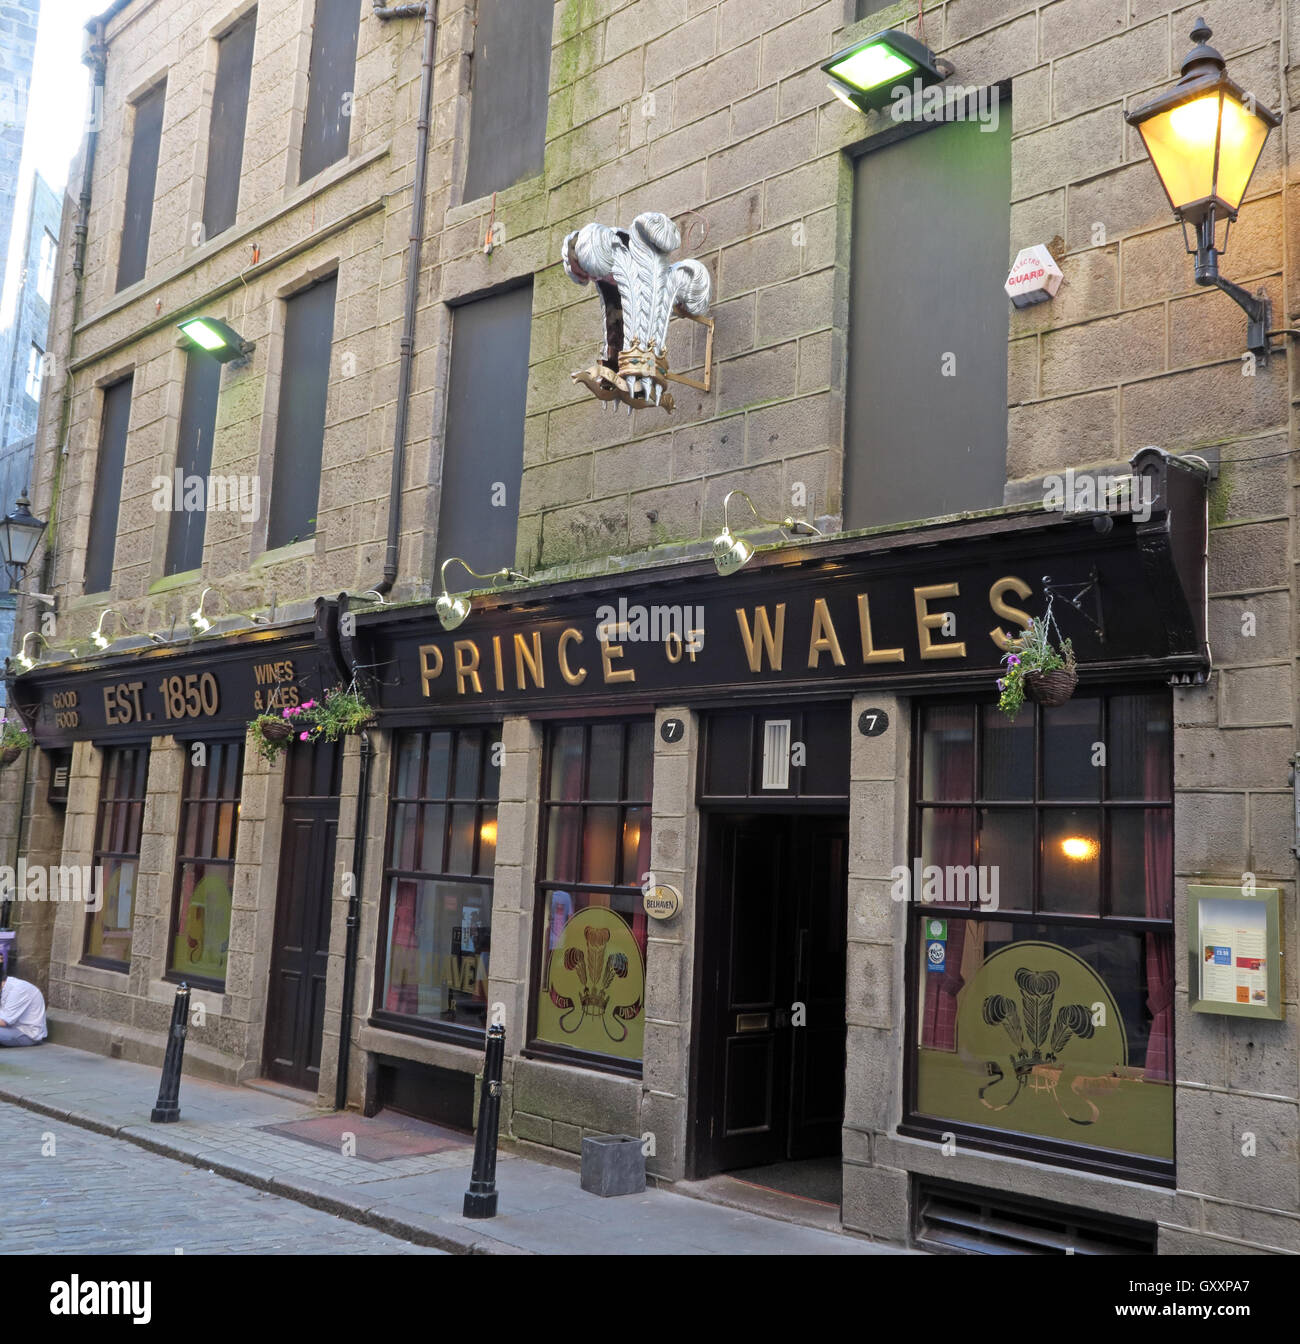 Prince of Wales,Real Ale Pub in Aberdeen, CAMRA and Orkney beers, Scotland, UK - Stock Image